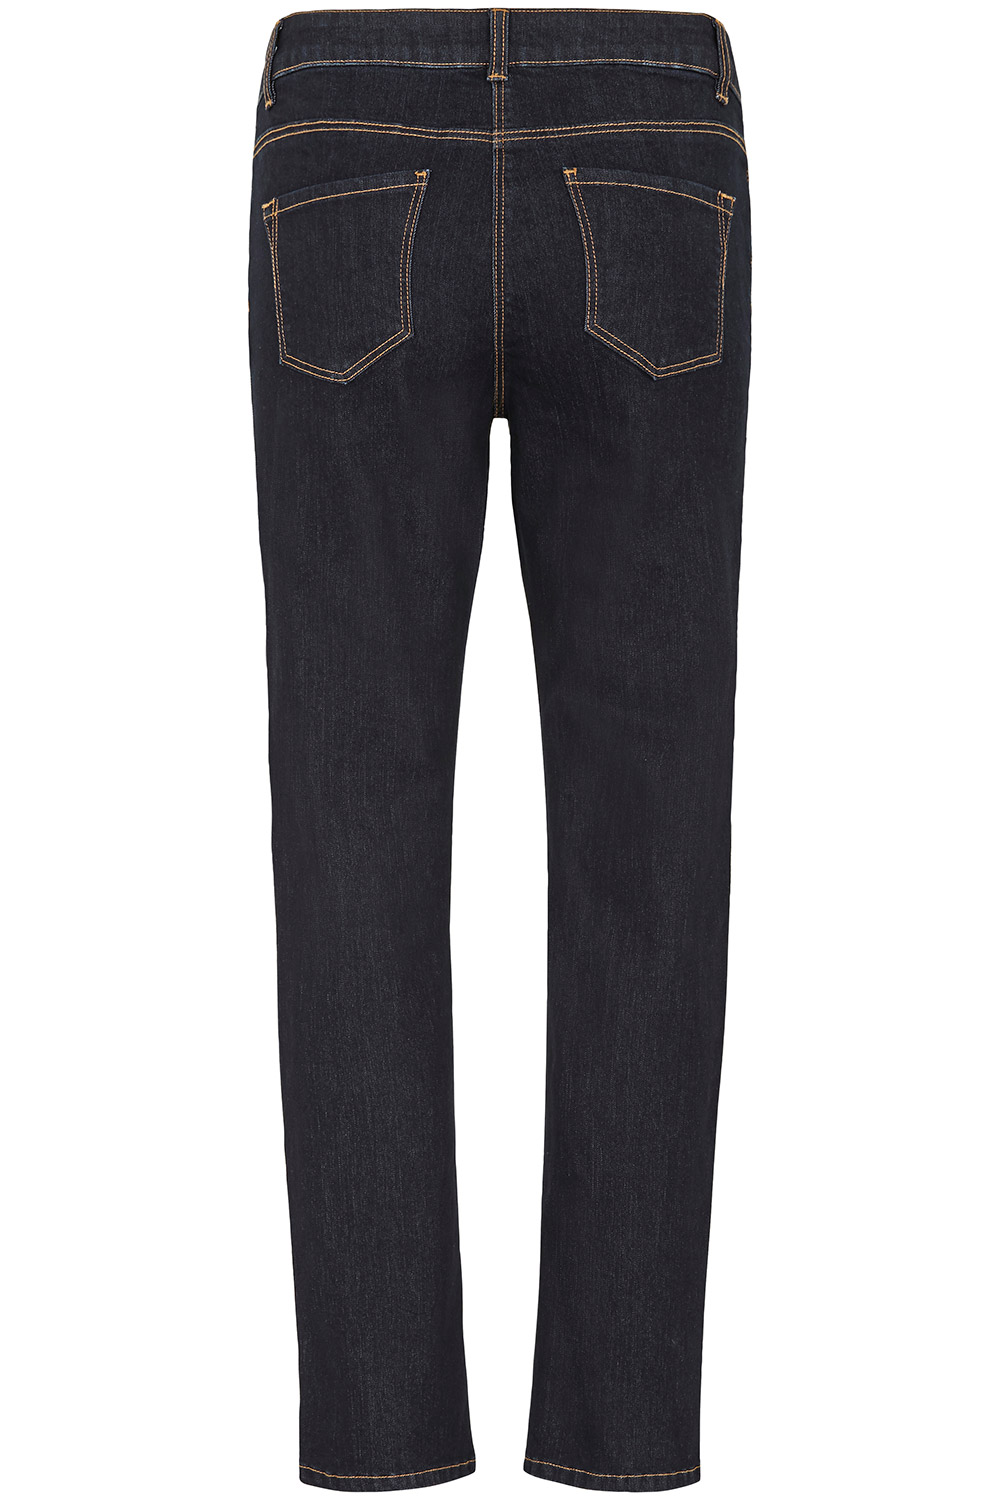 ed8e2b602a6 BETTY Cotton Bootcut Jean | Collect In-store & Home Delivery | Bonmarché